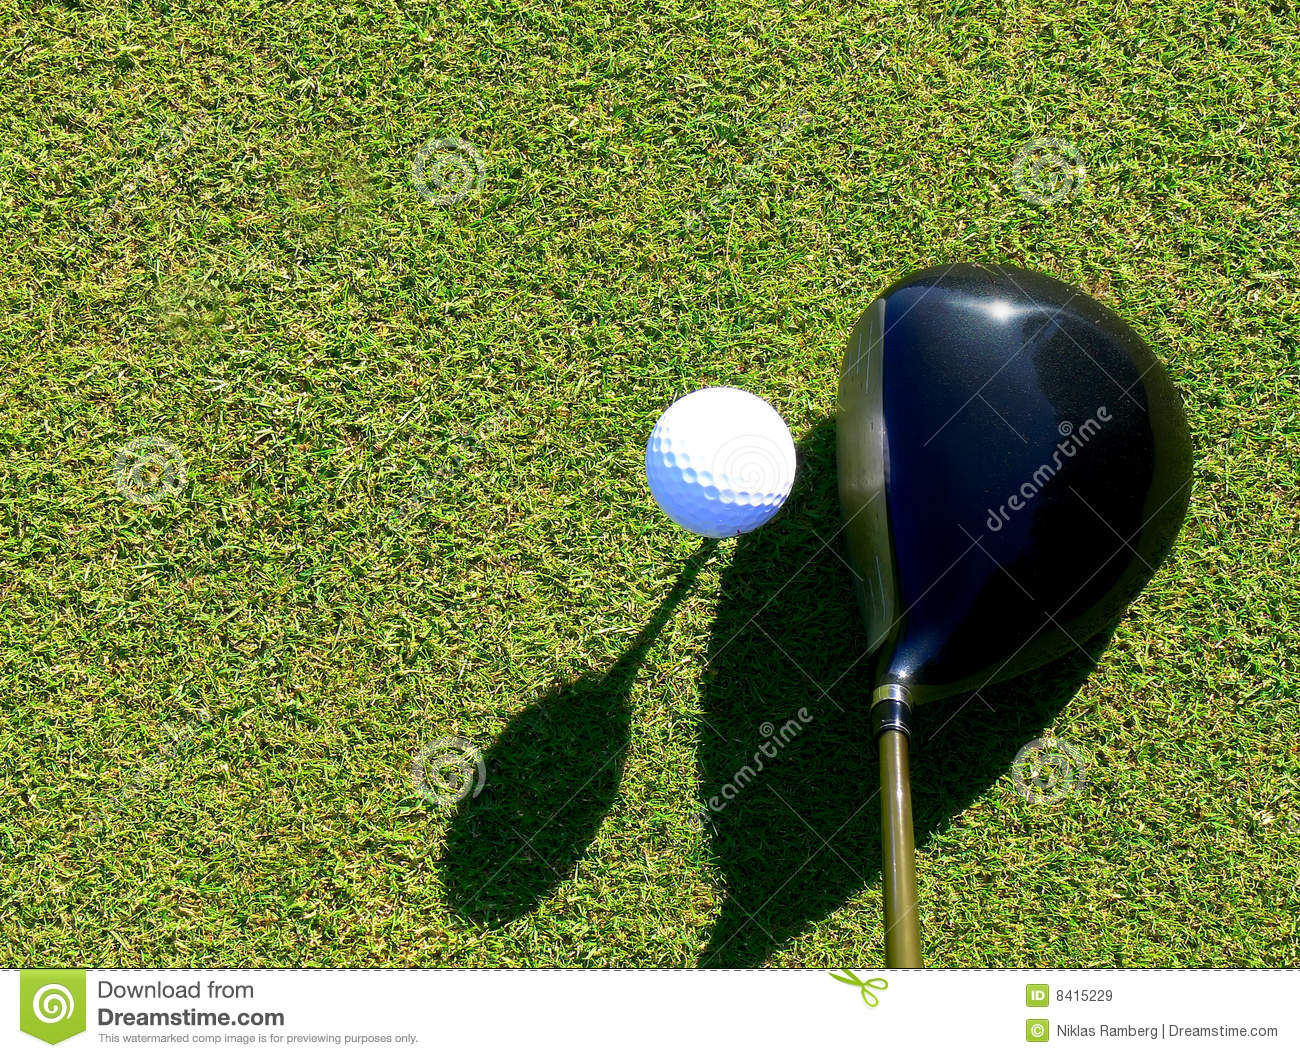 how to hit a golf ball with a driver